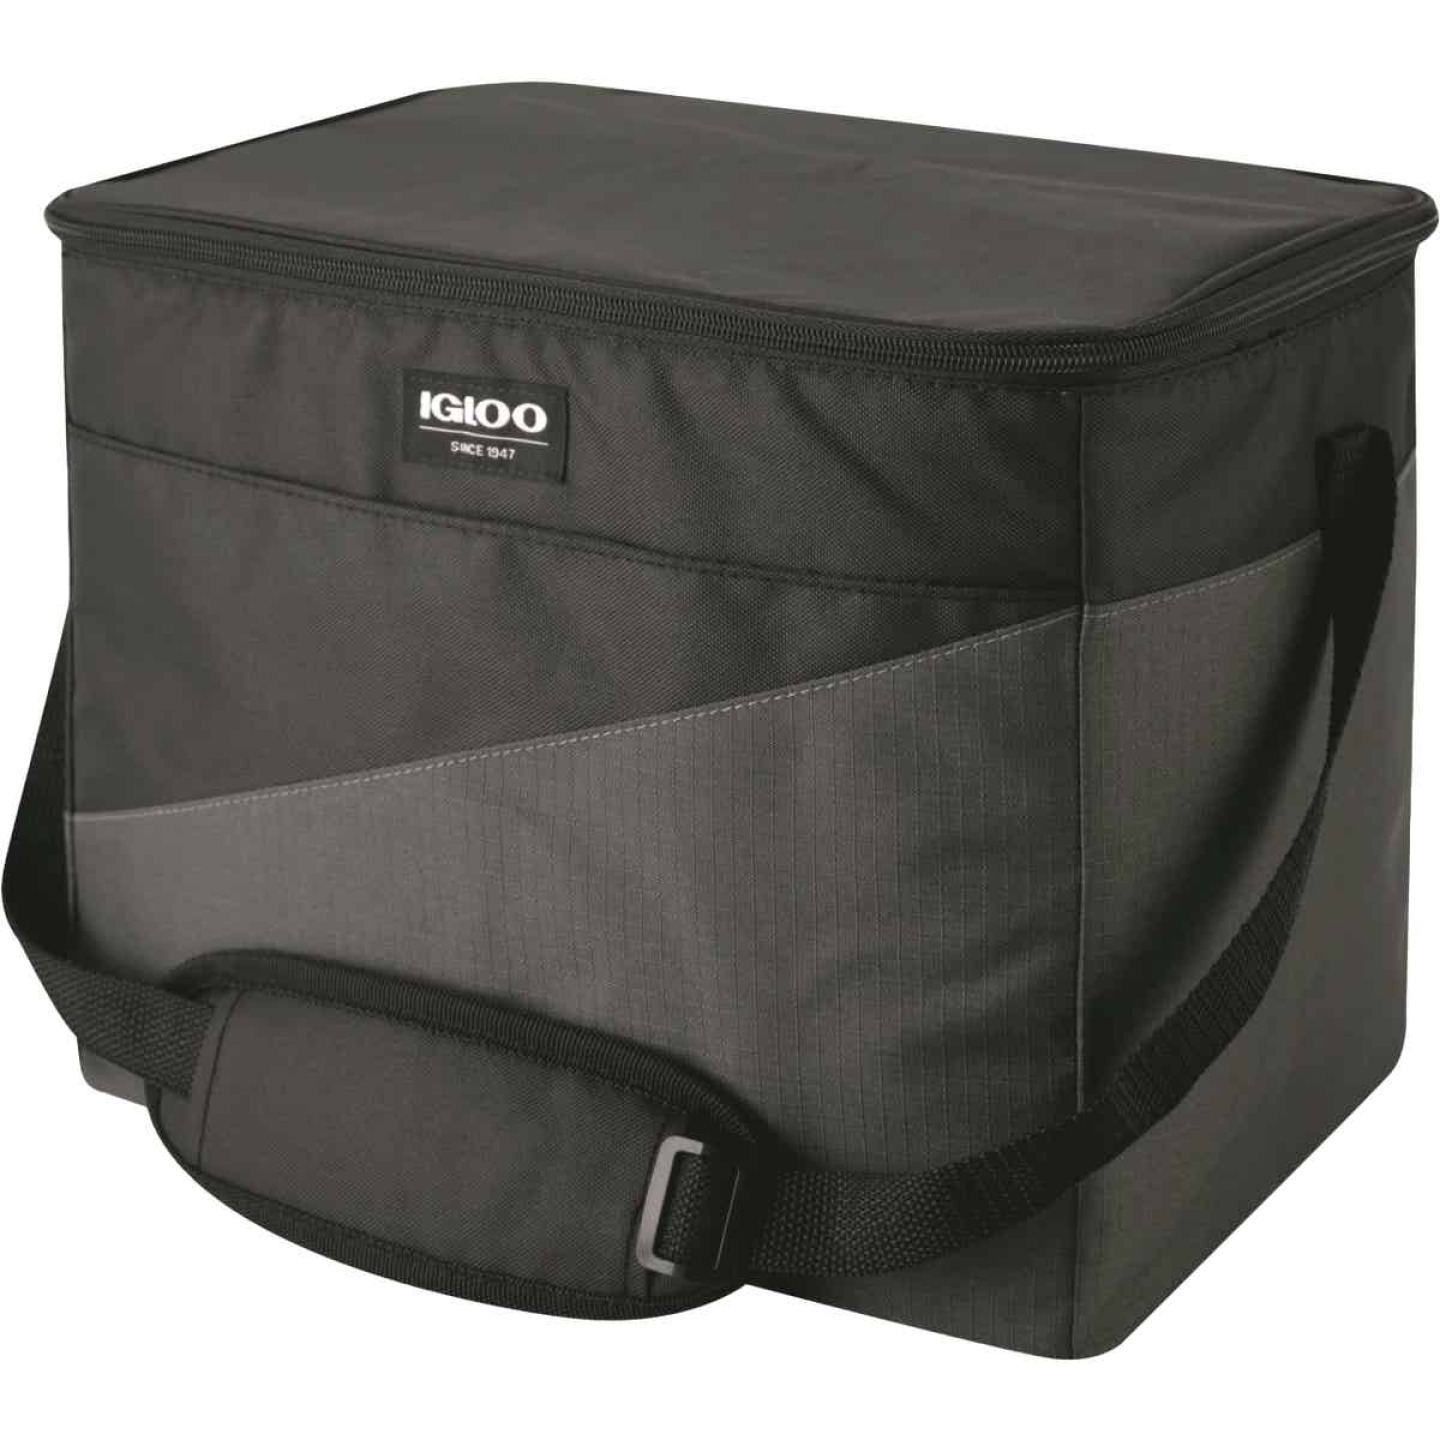 Igloo HLC 24 Sport 24-Can Soft-Side Cooler, Gray & Black Image 1